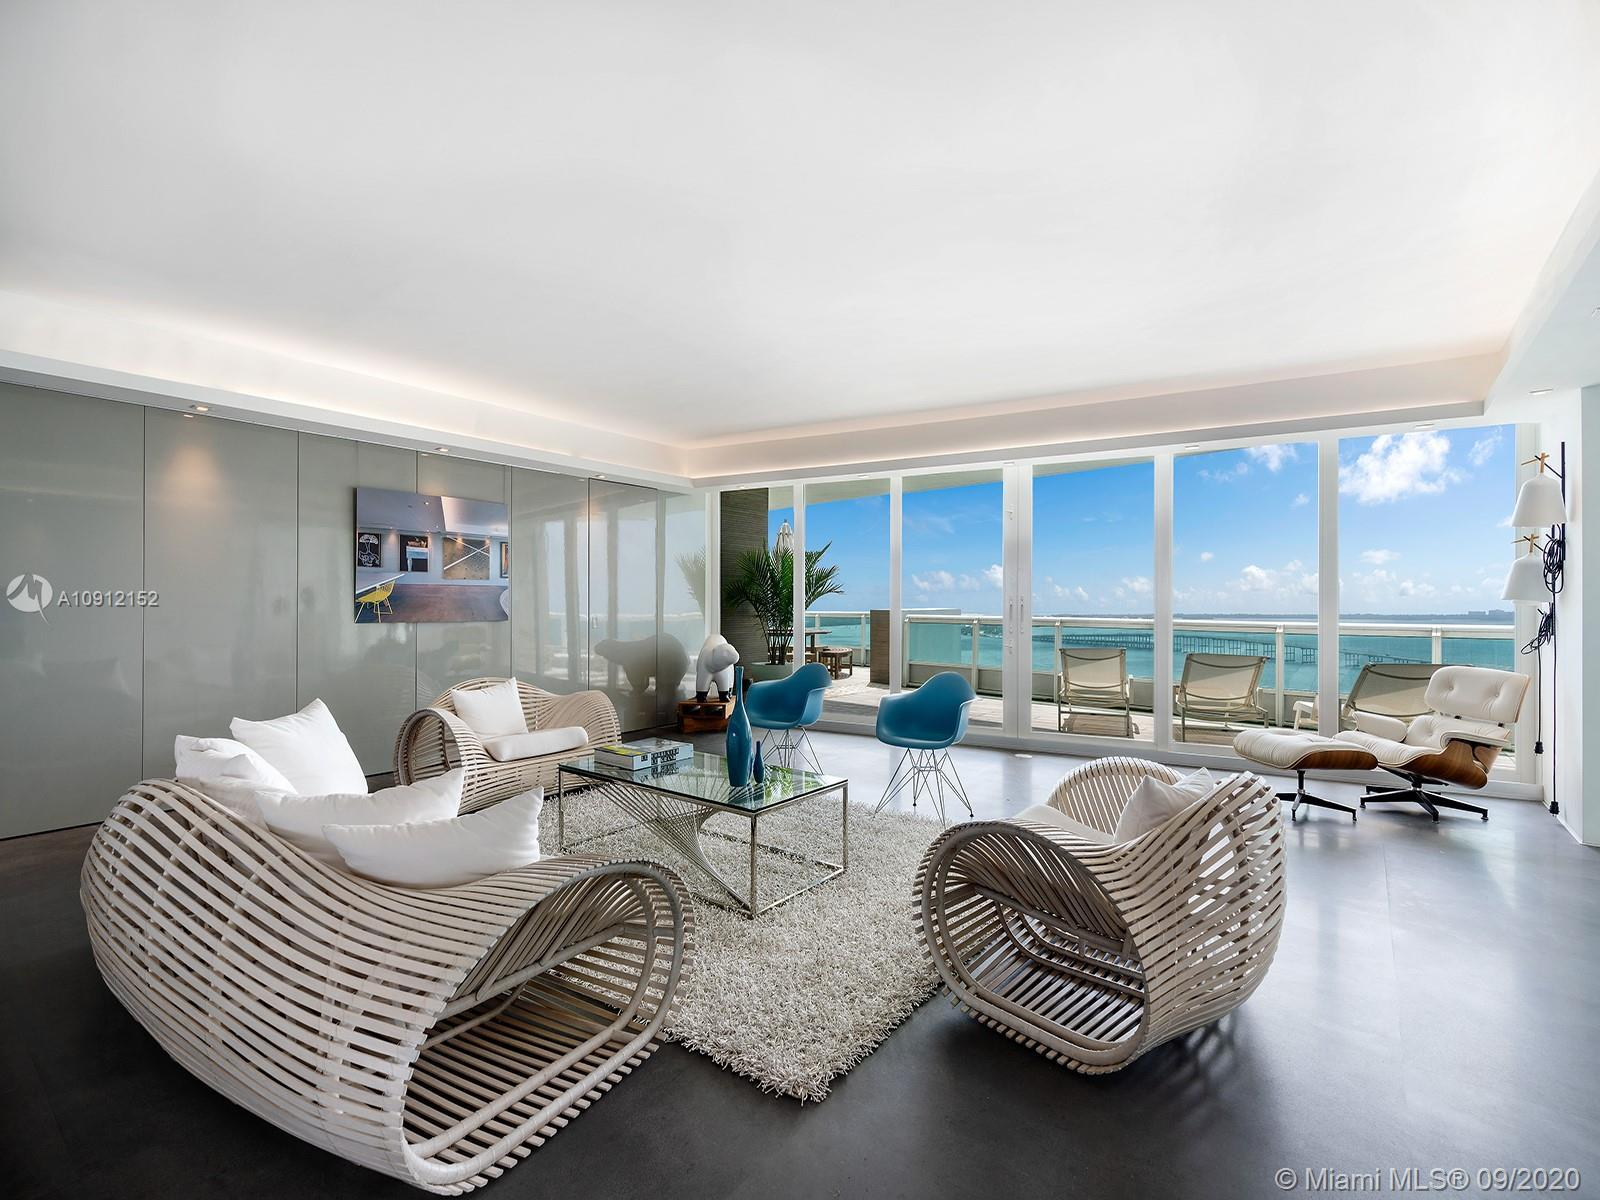 This luxe residence on the 27th floor of the Santa Maria tower on Miami's Brickell Avenue was recent